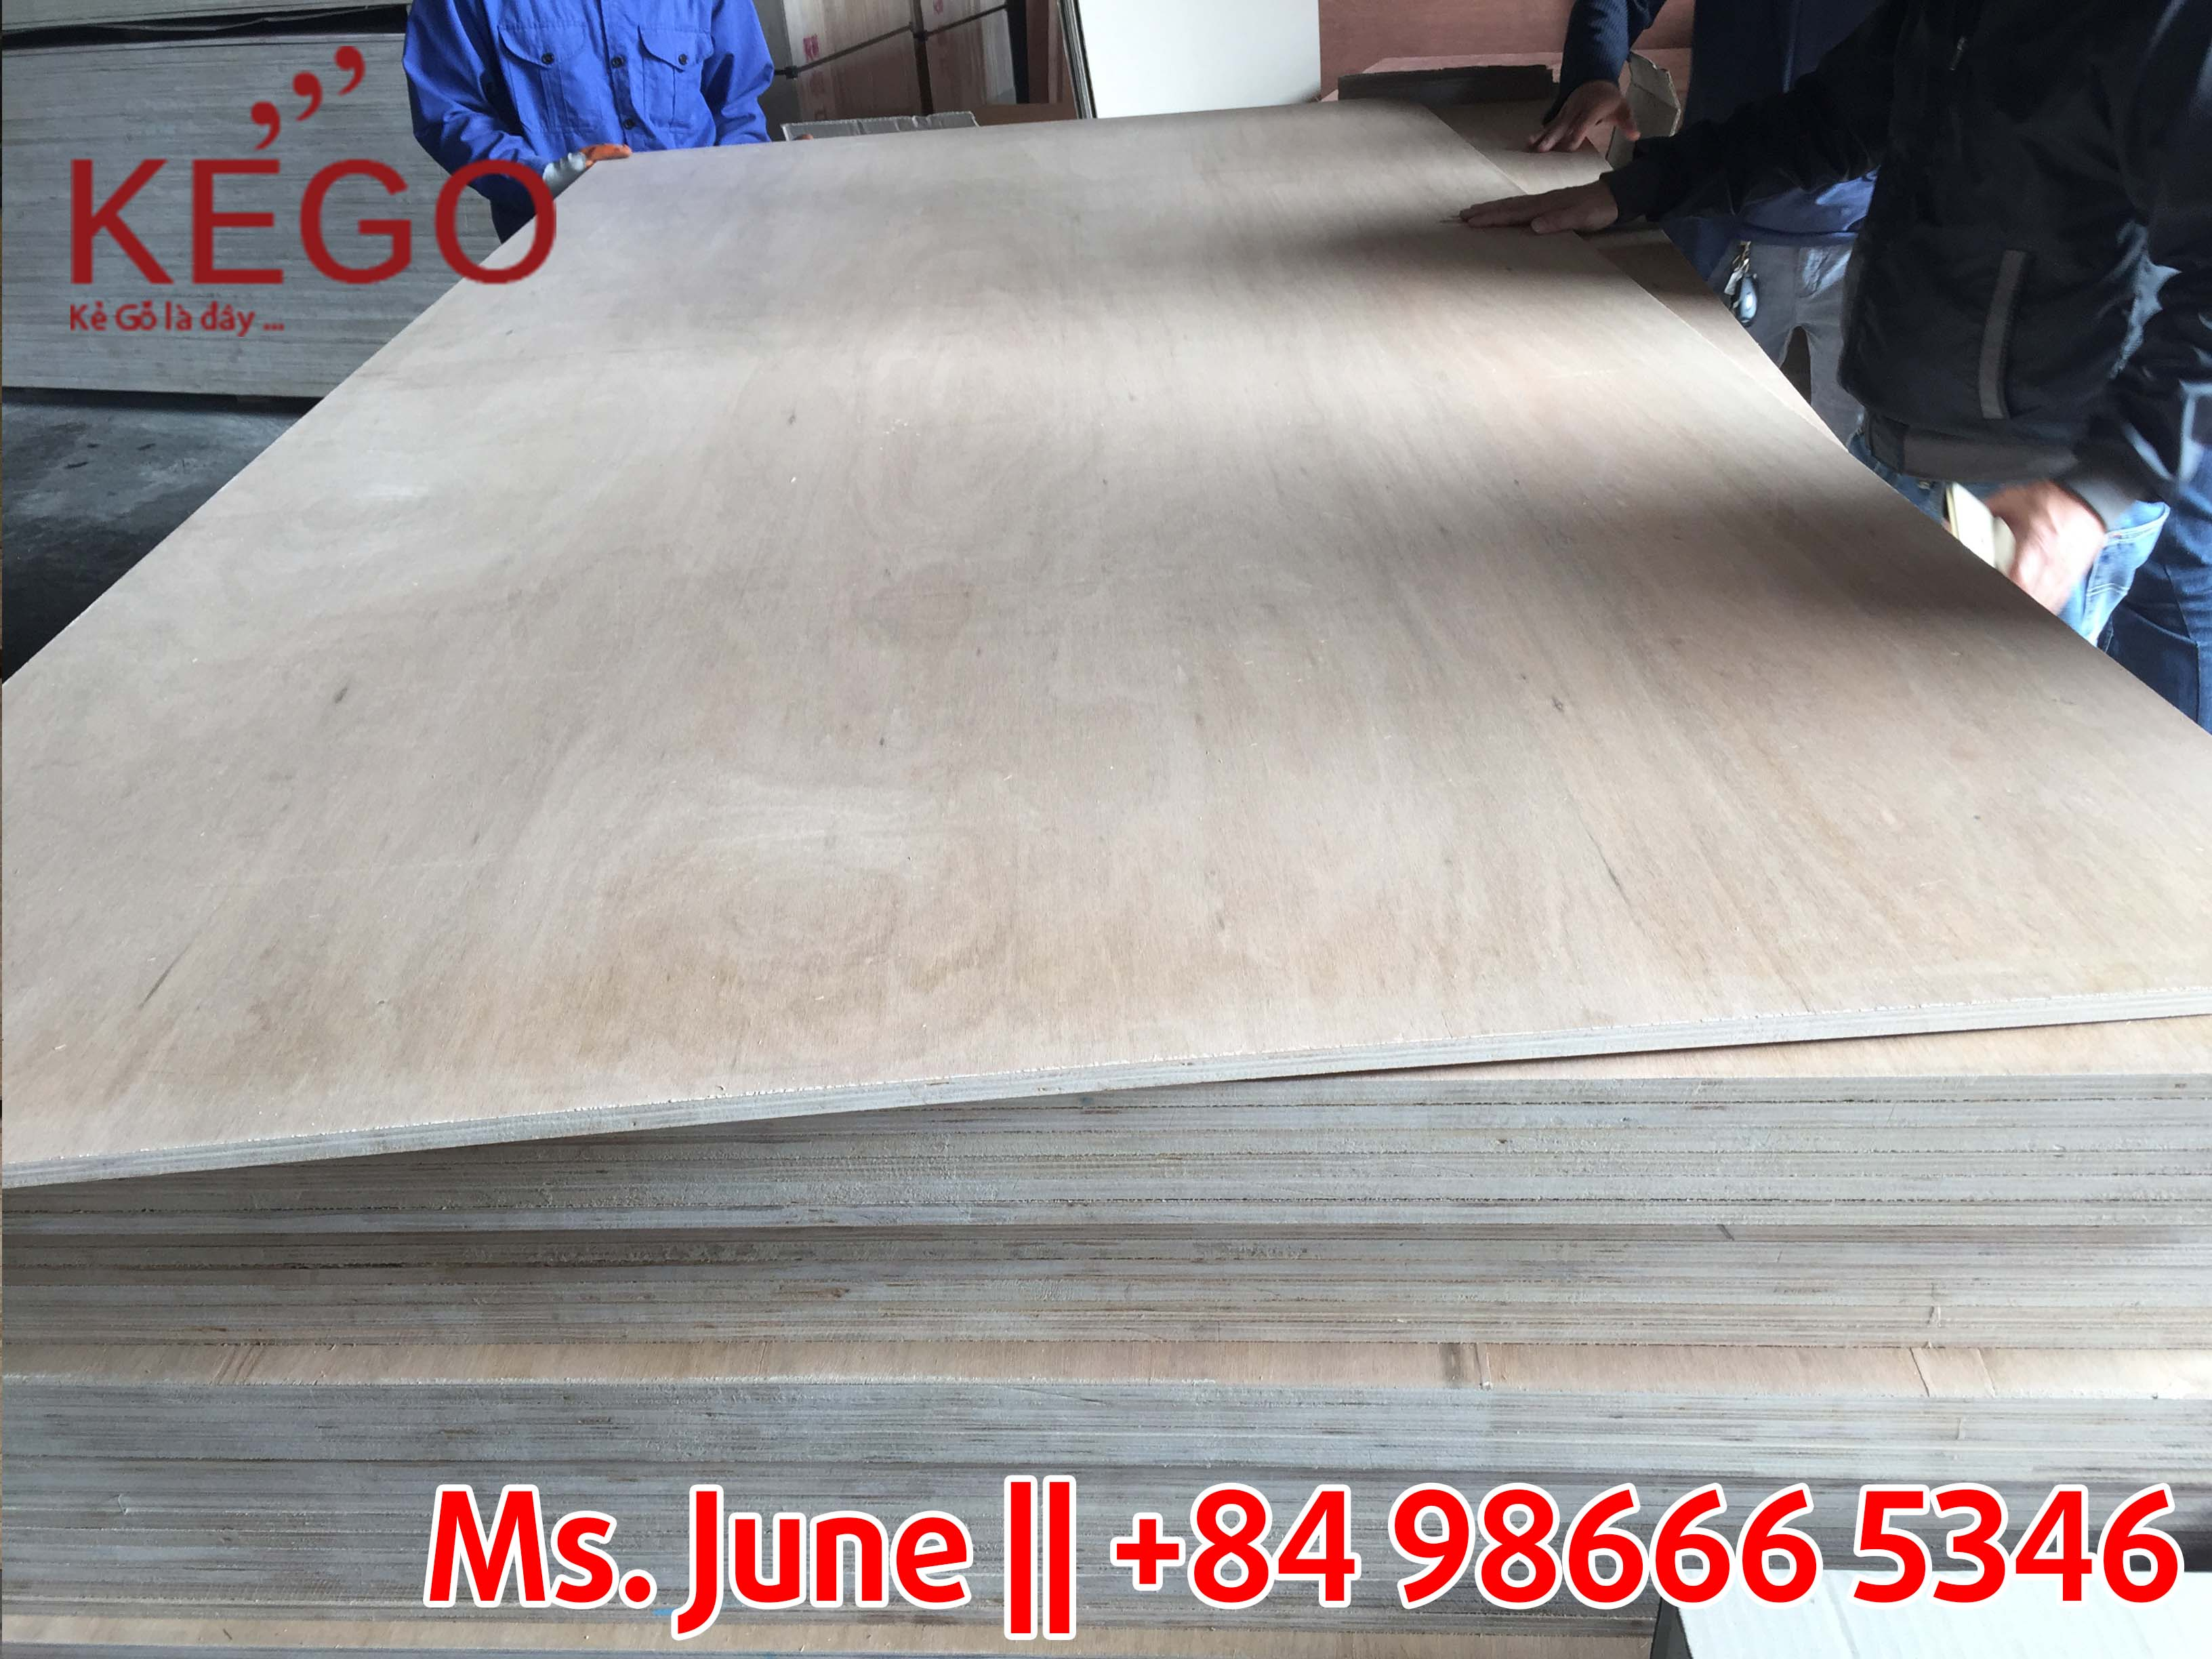 Packing plywood 122024404.6mm grade BC